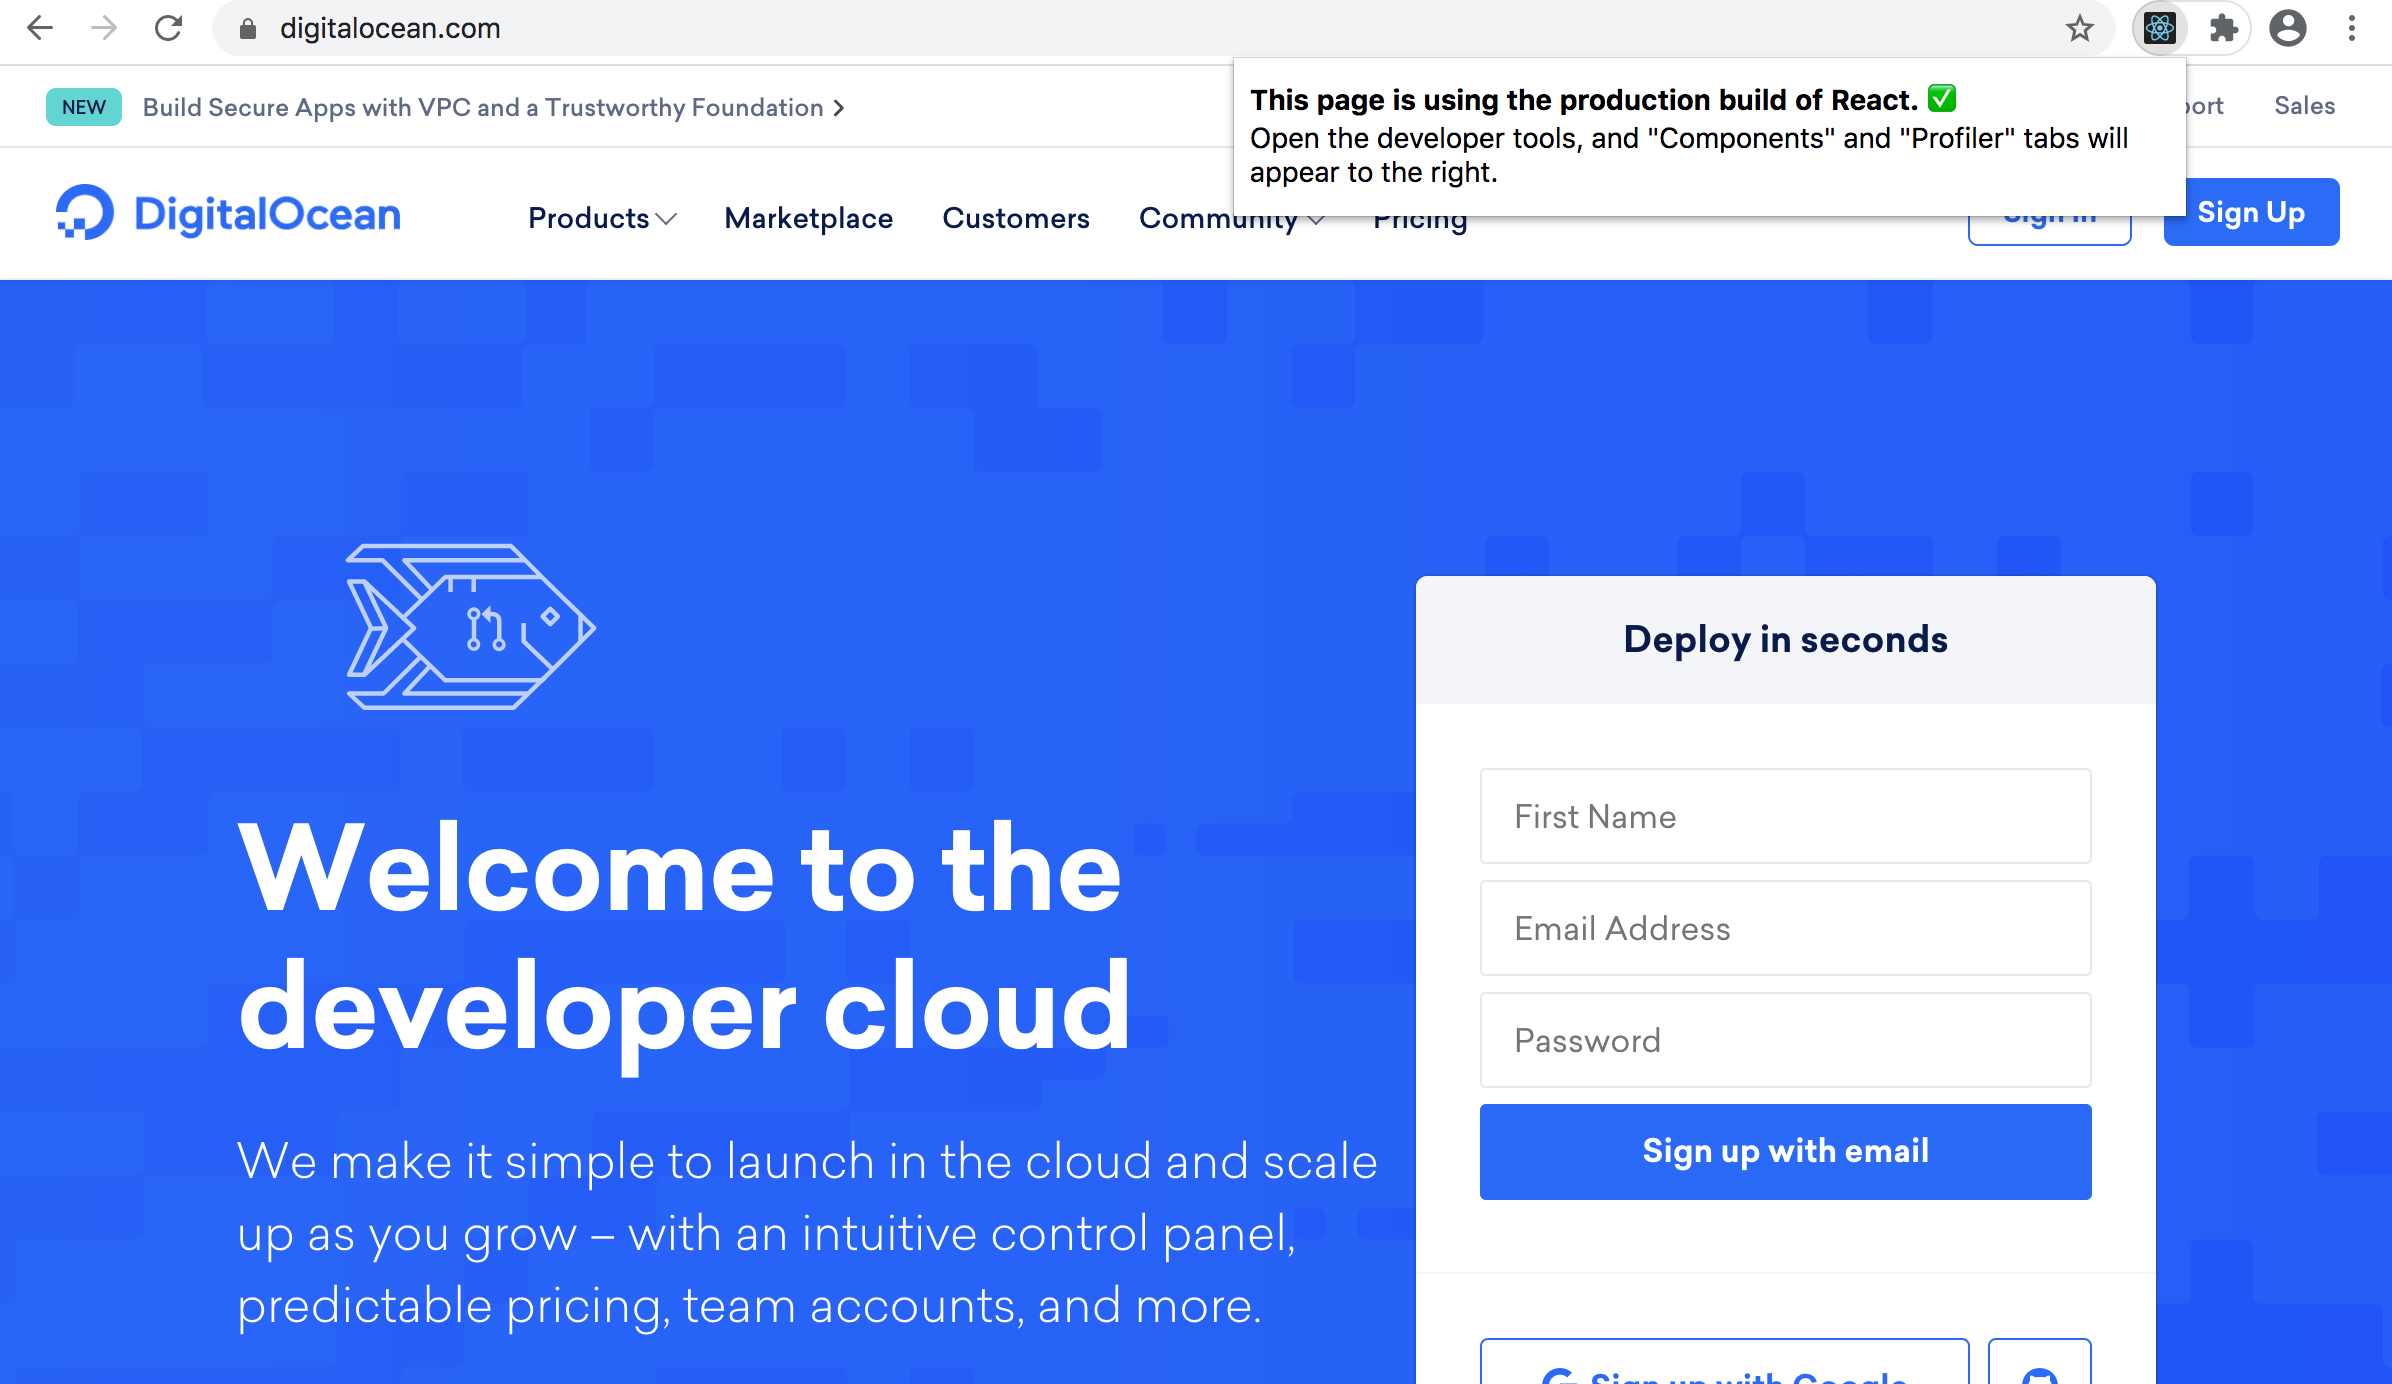 DigitalOcean React Production Build information